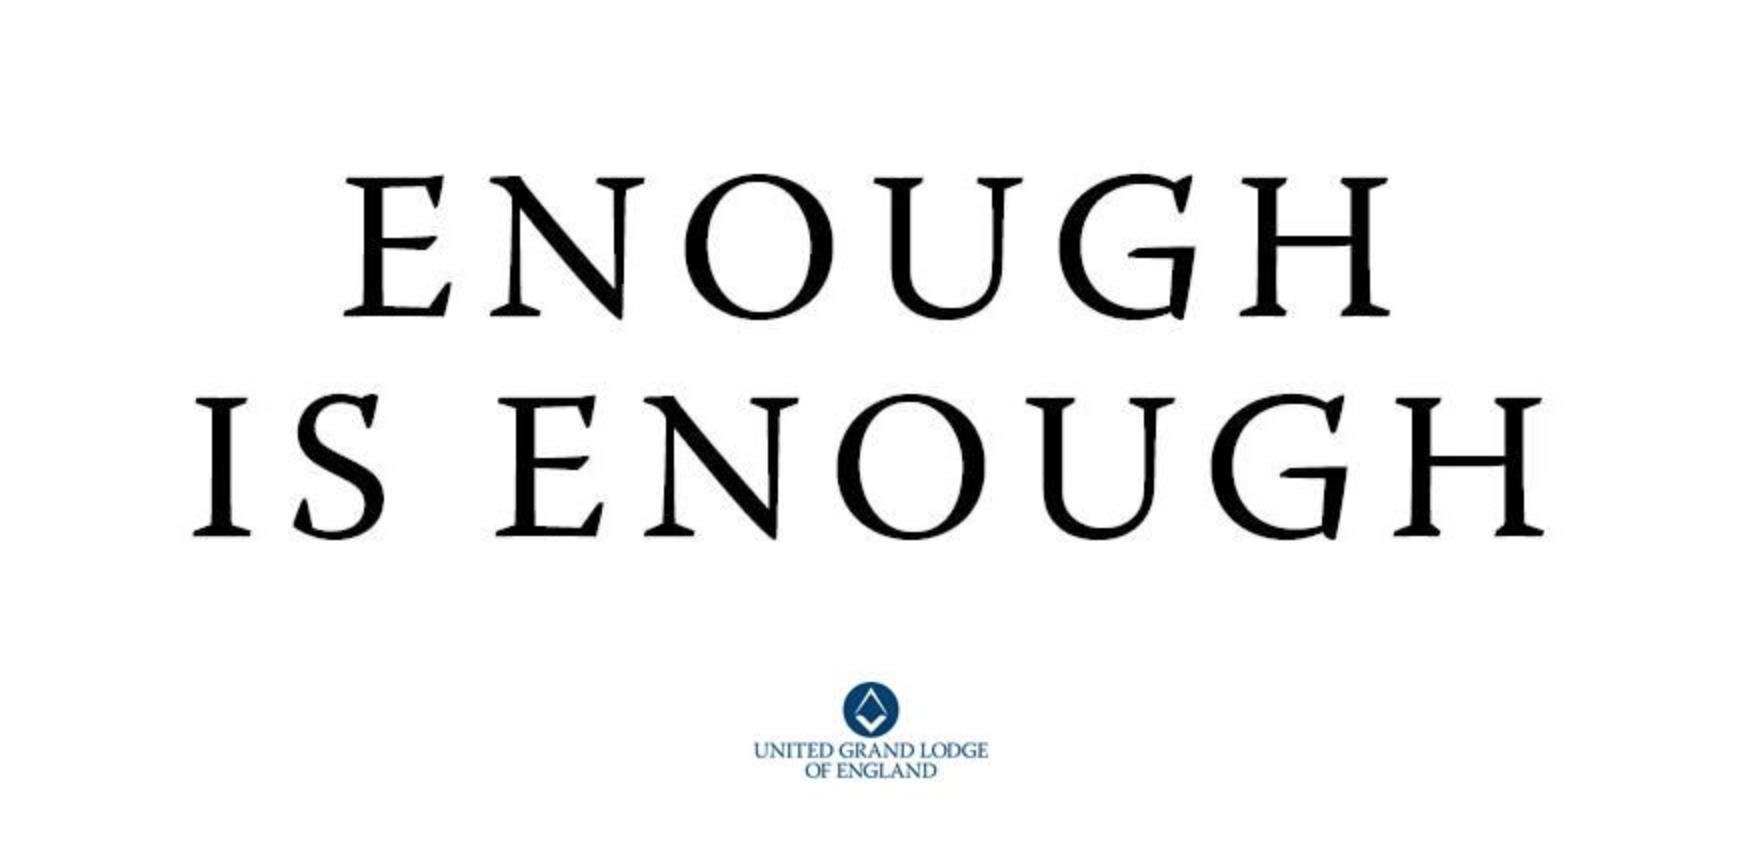 Enough is Enough says the United Grand Lodge of England